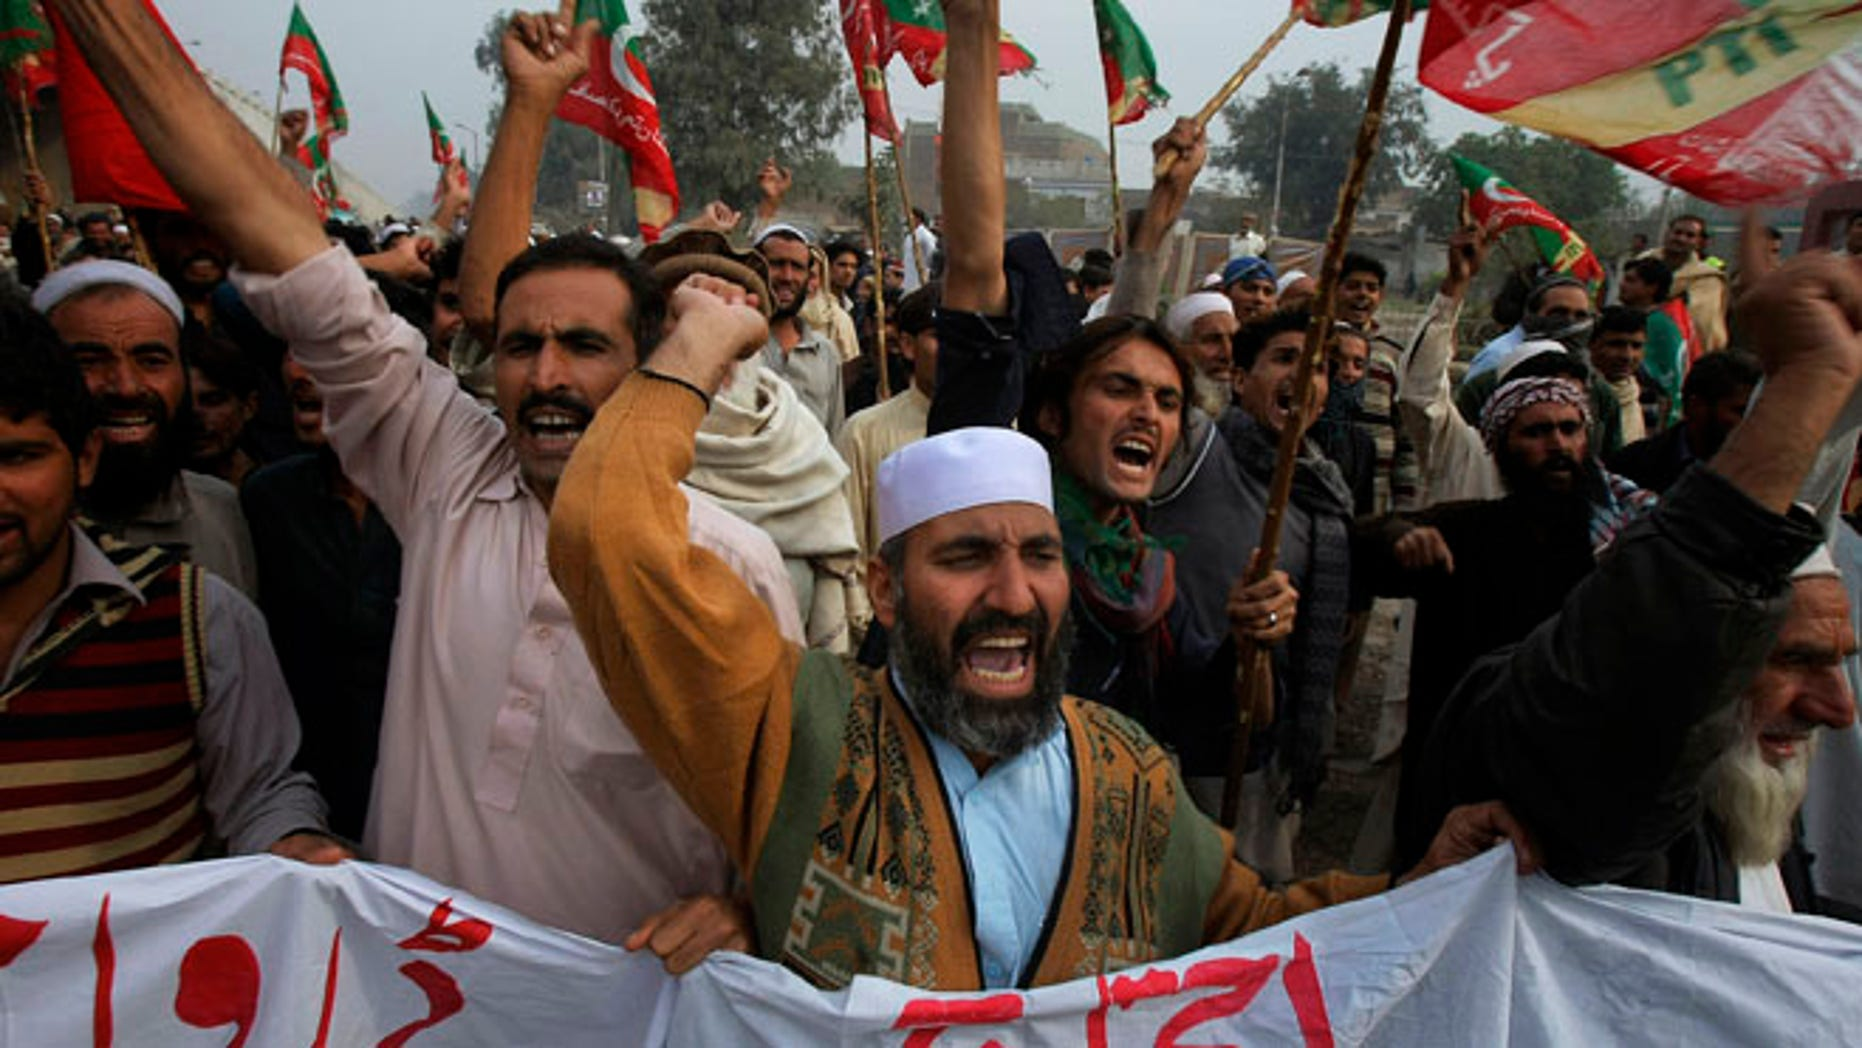 Nov. 23, 2013: Supporters of Tehreek-e-Insaf or Movement for Justice party chant anti-U.S. slogans during a rally in Peshawar, Pakistan. Thousands of people protesting U.S. drone strikes blocked a road in northwest Pakistan used to truck NATO troop supplies and equipment in and out of Afghanistan, the latest sign of rising tension caused by the attacks.